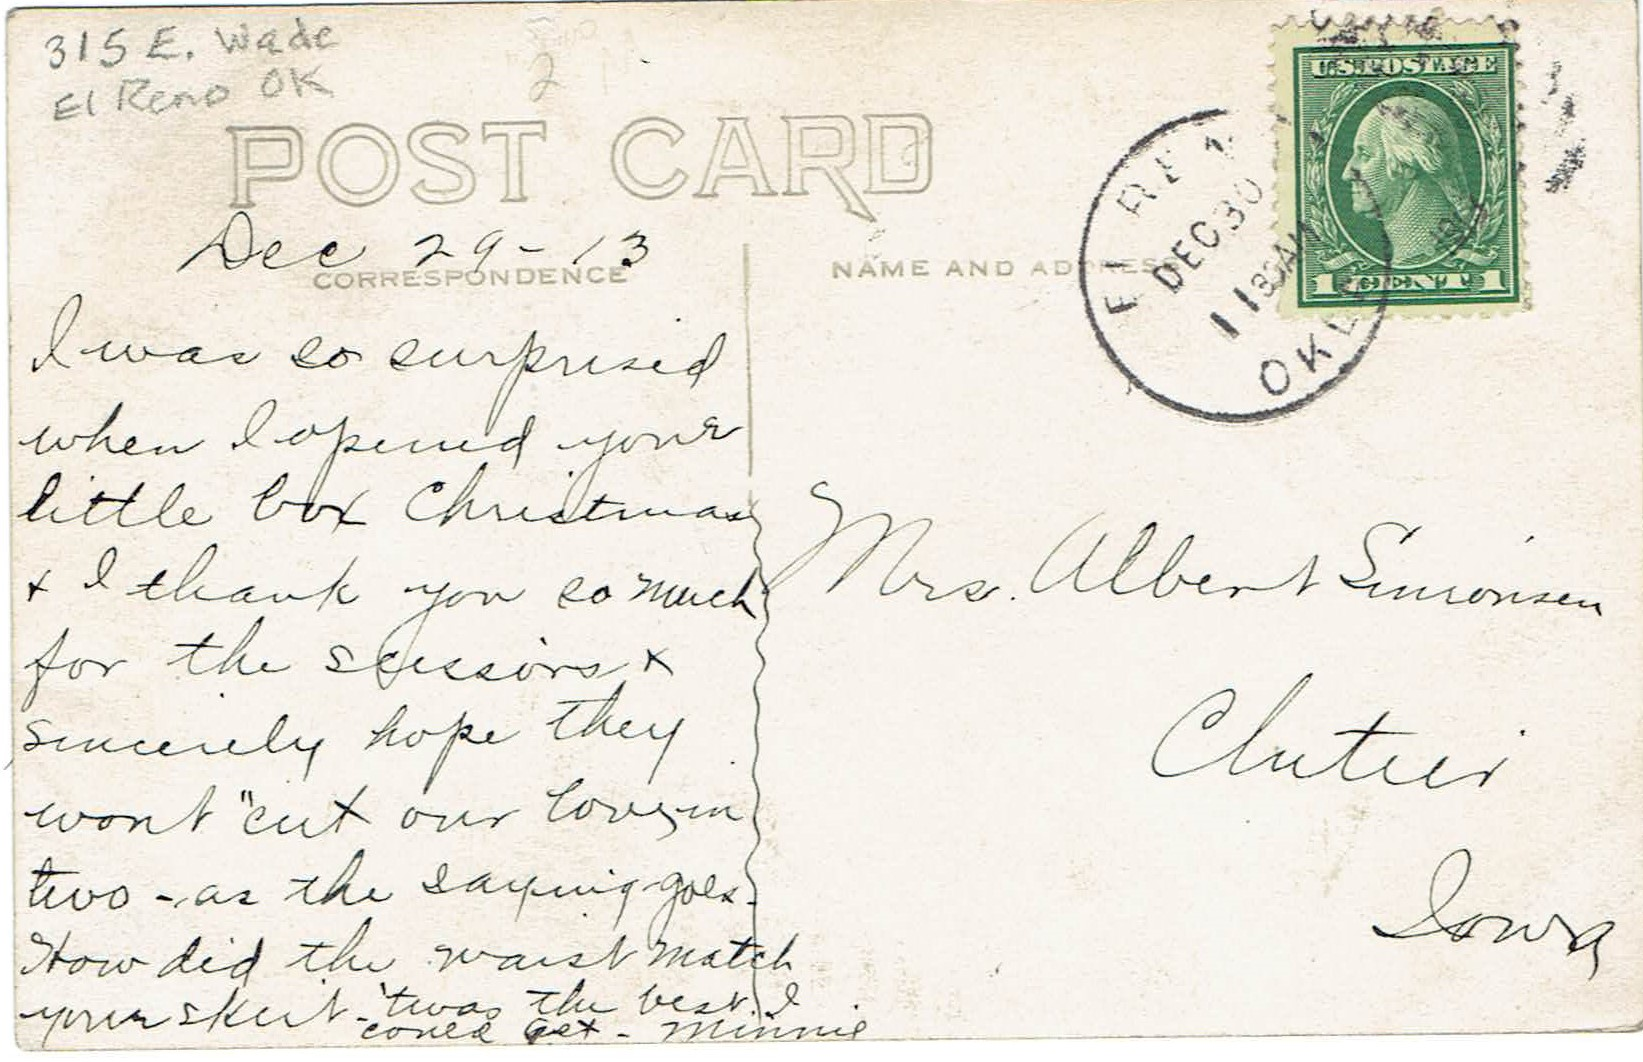 315 E Wade Street postcard 1913 back Tommy Neathery Collection